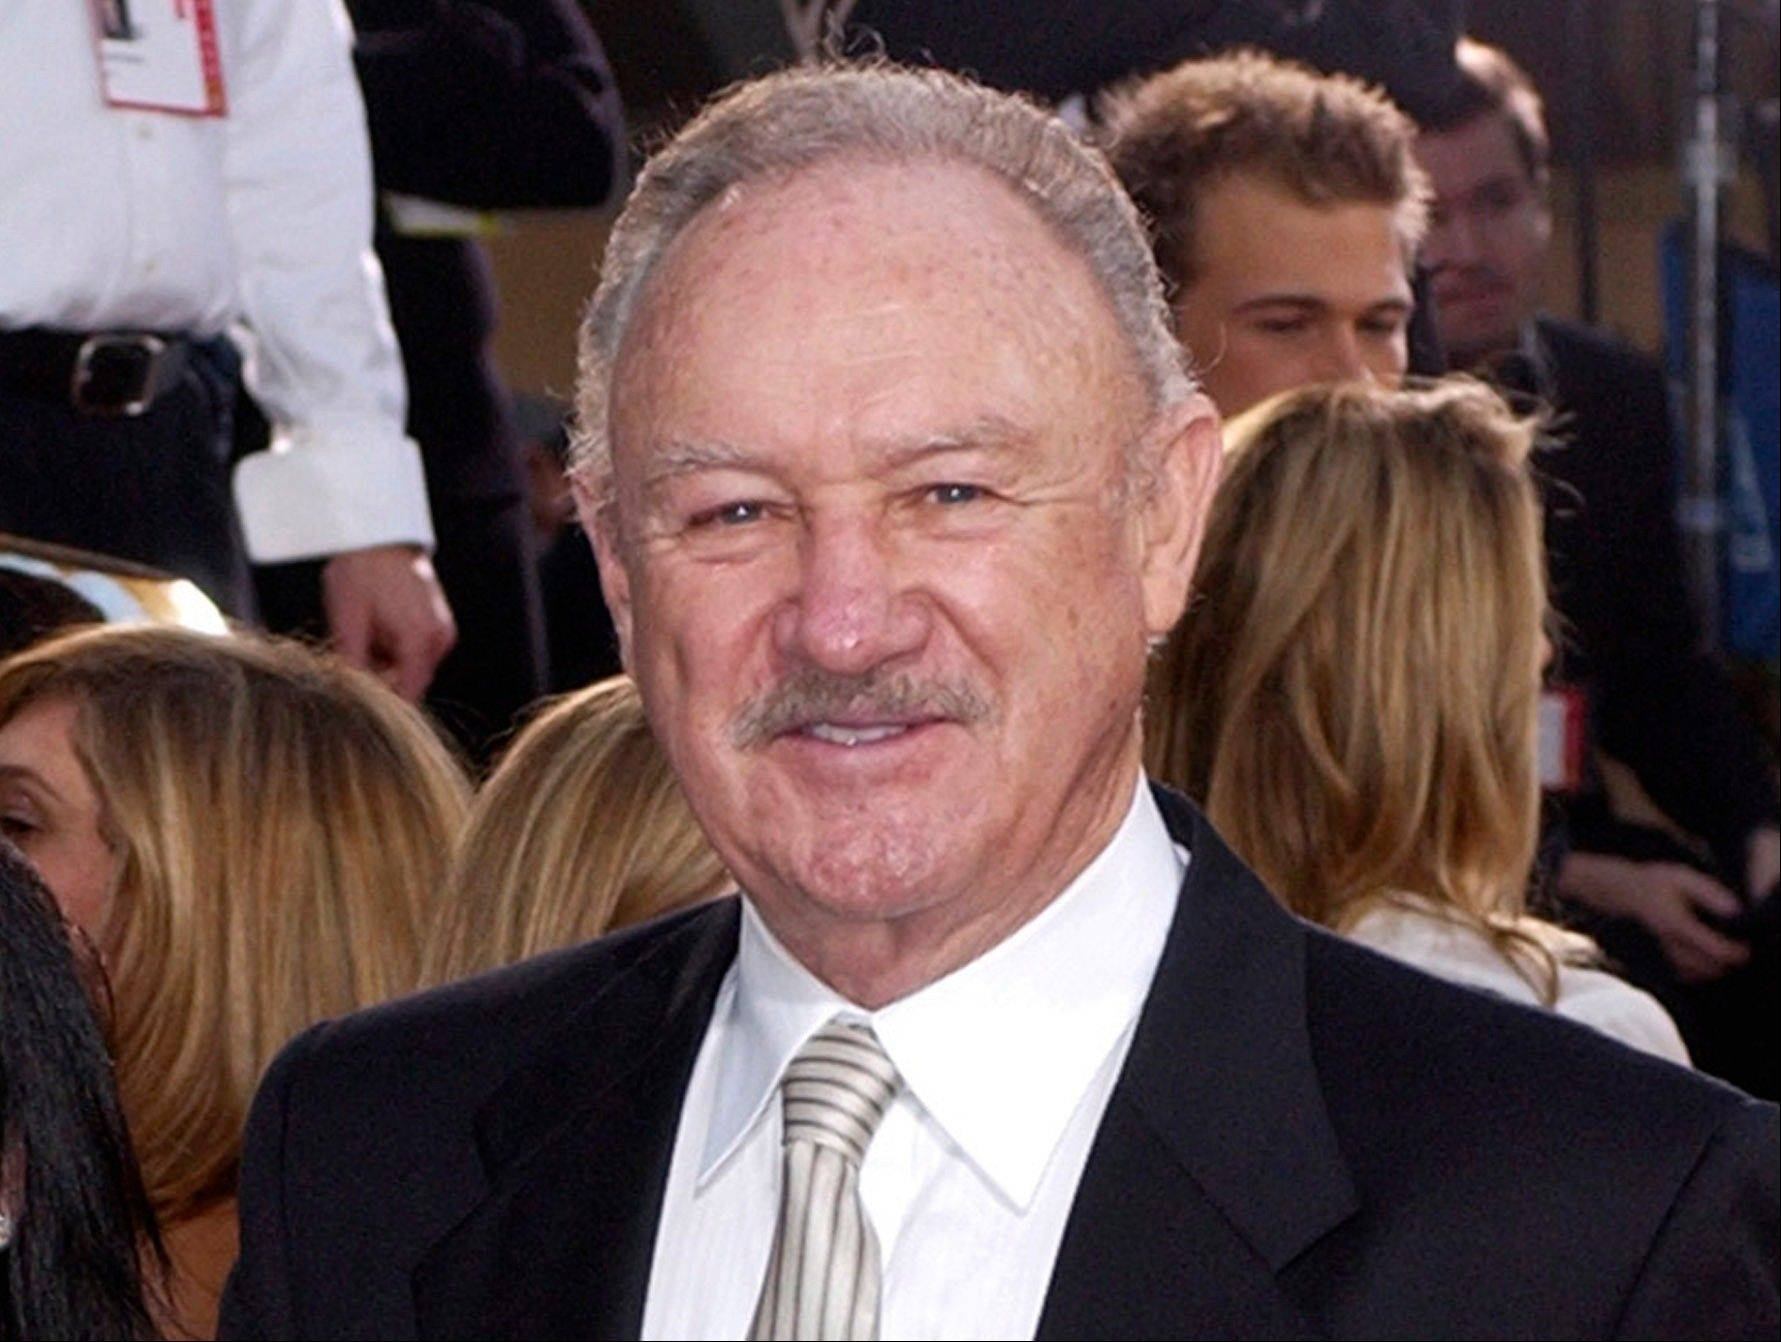 A New Mexico police report says Gene Hackman had given clothes, money and rides to a homeless man he slapped this week after the man became aggressive toward the Oscar-winning actor and his wife. The Santa Fe New Mexican reports Hackman and his wife told officers they had helped 63-year-old Bruce Becker for several years.